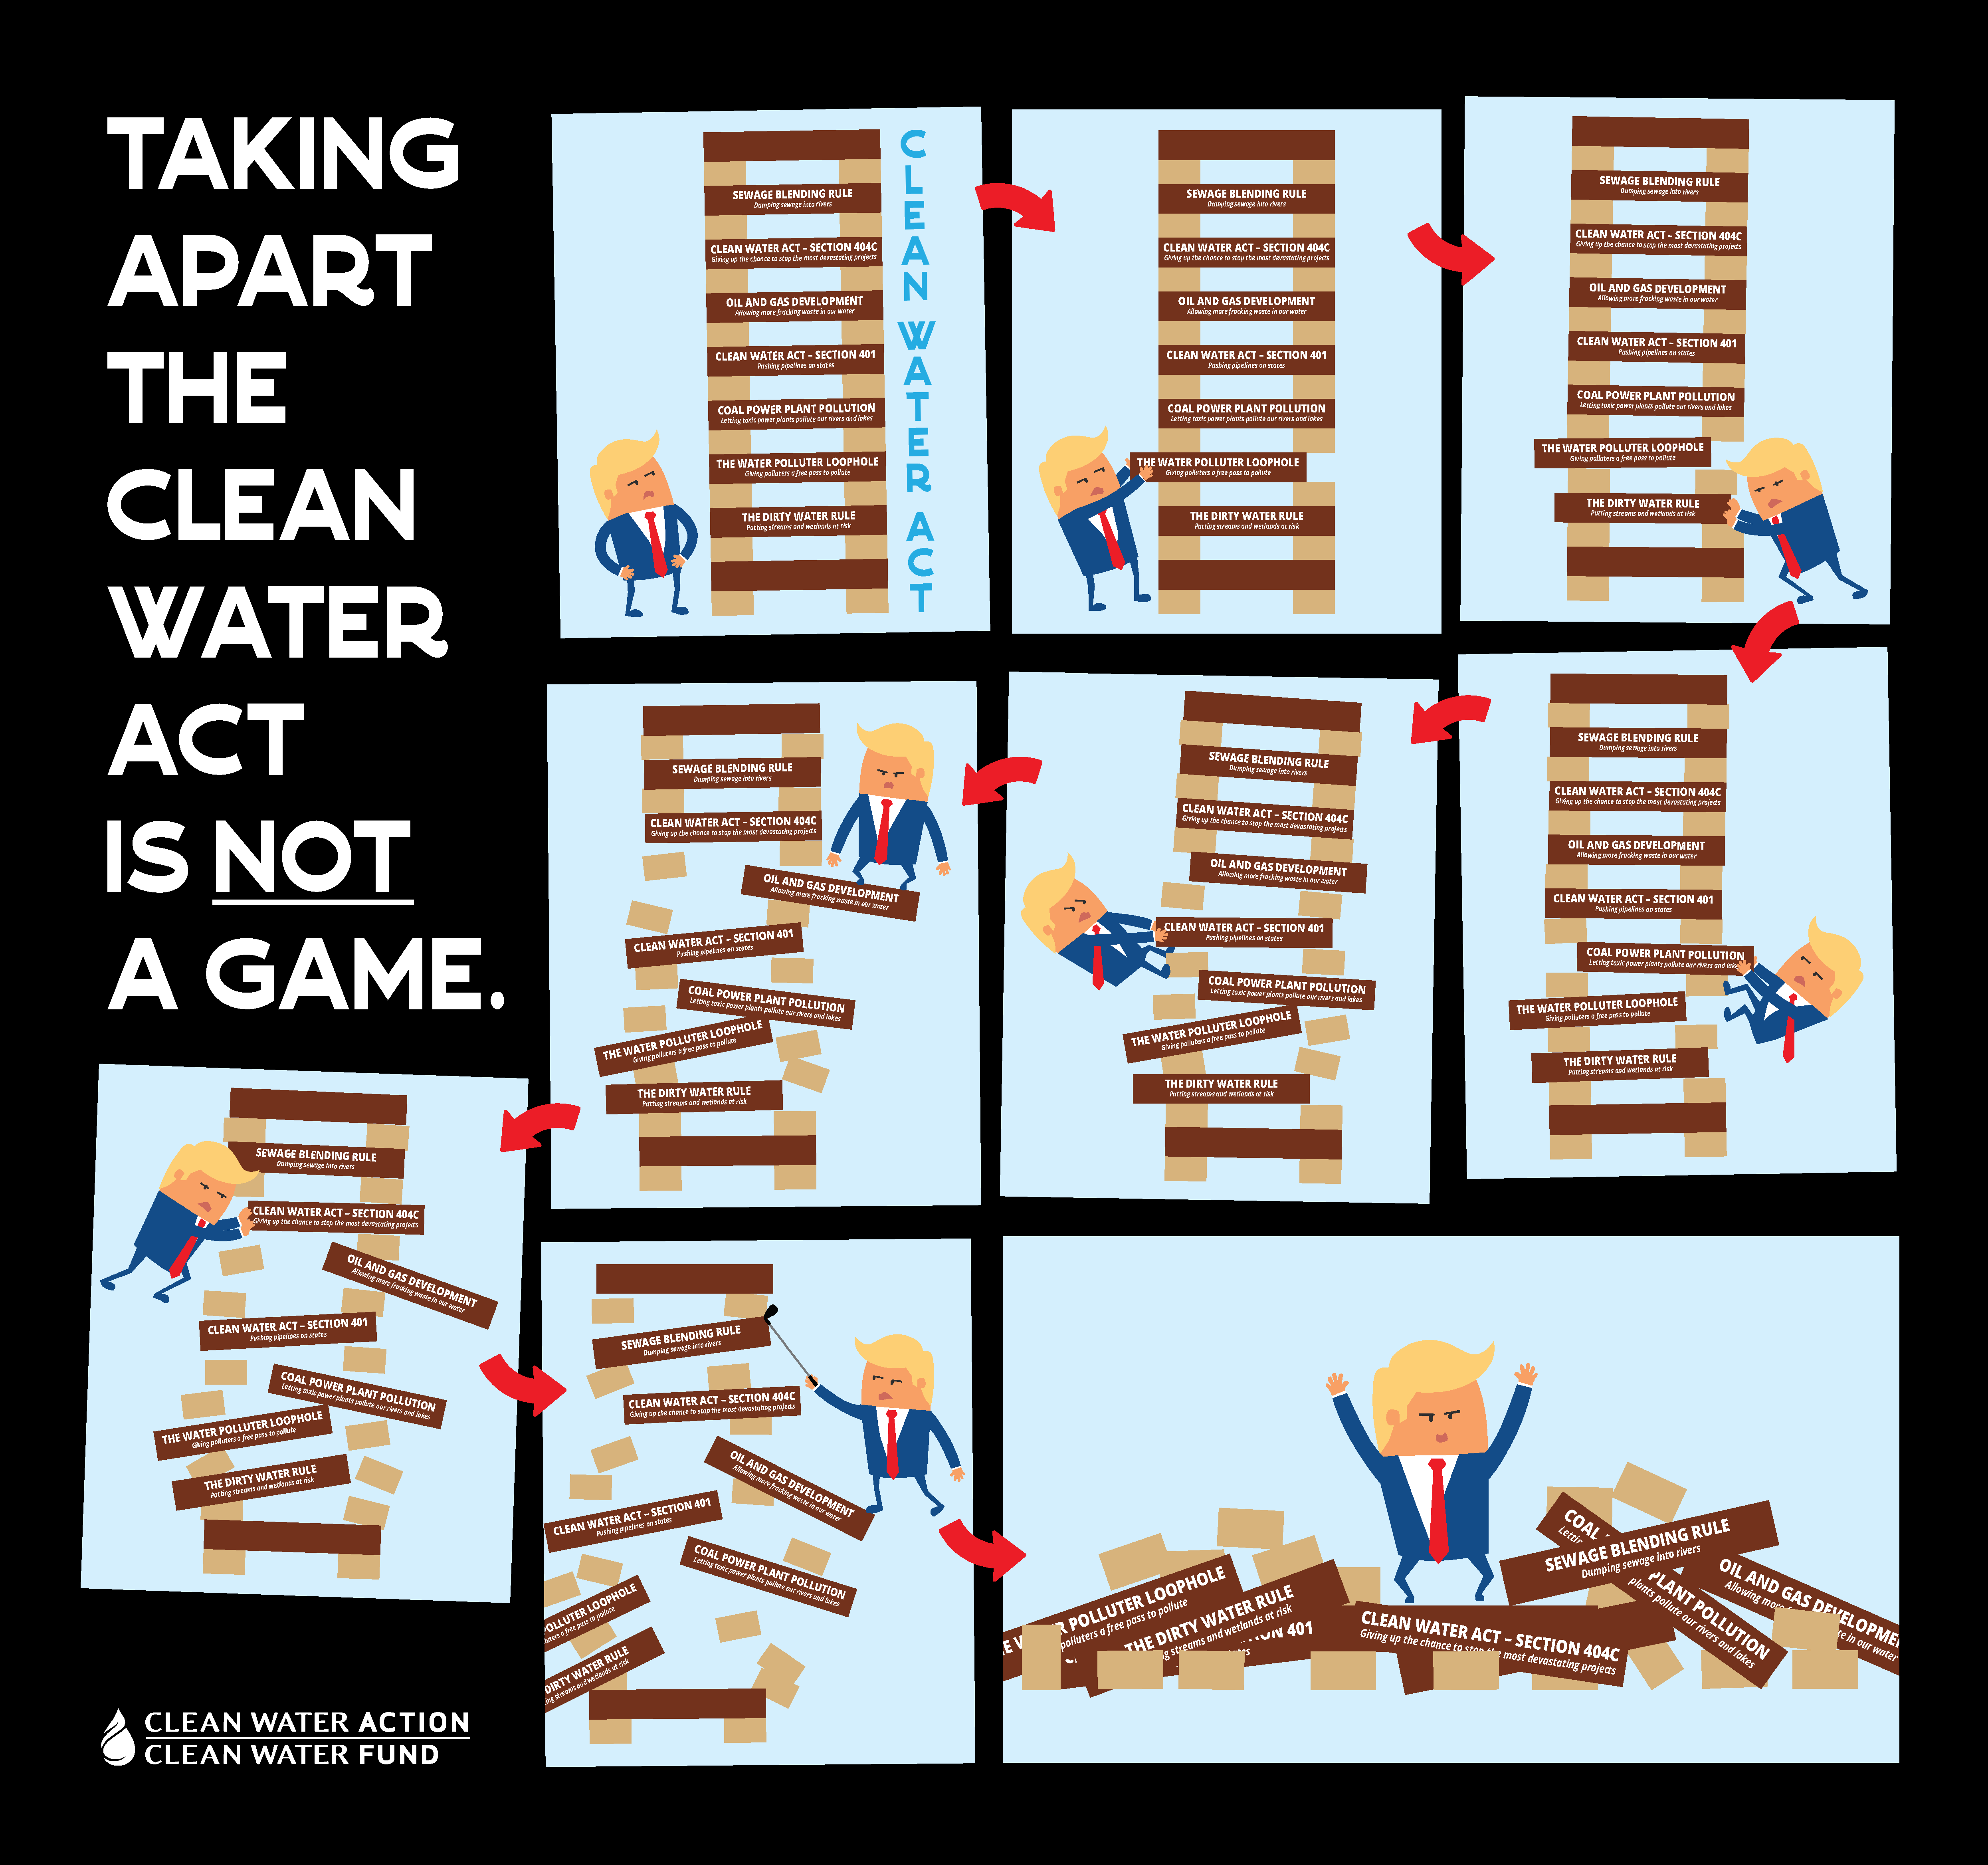 Attacking the Clean Water Act is not a game